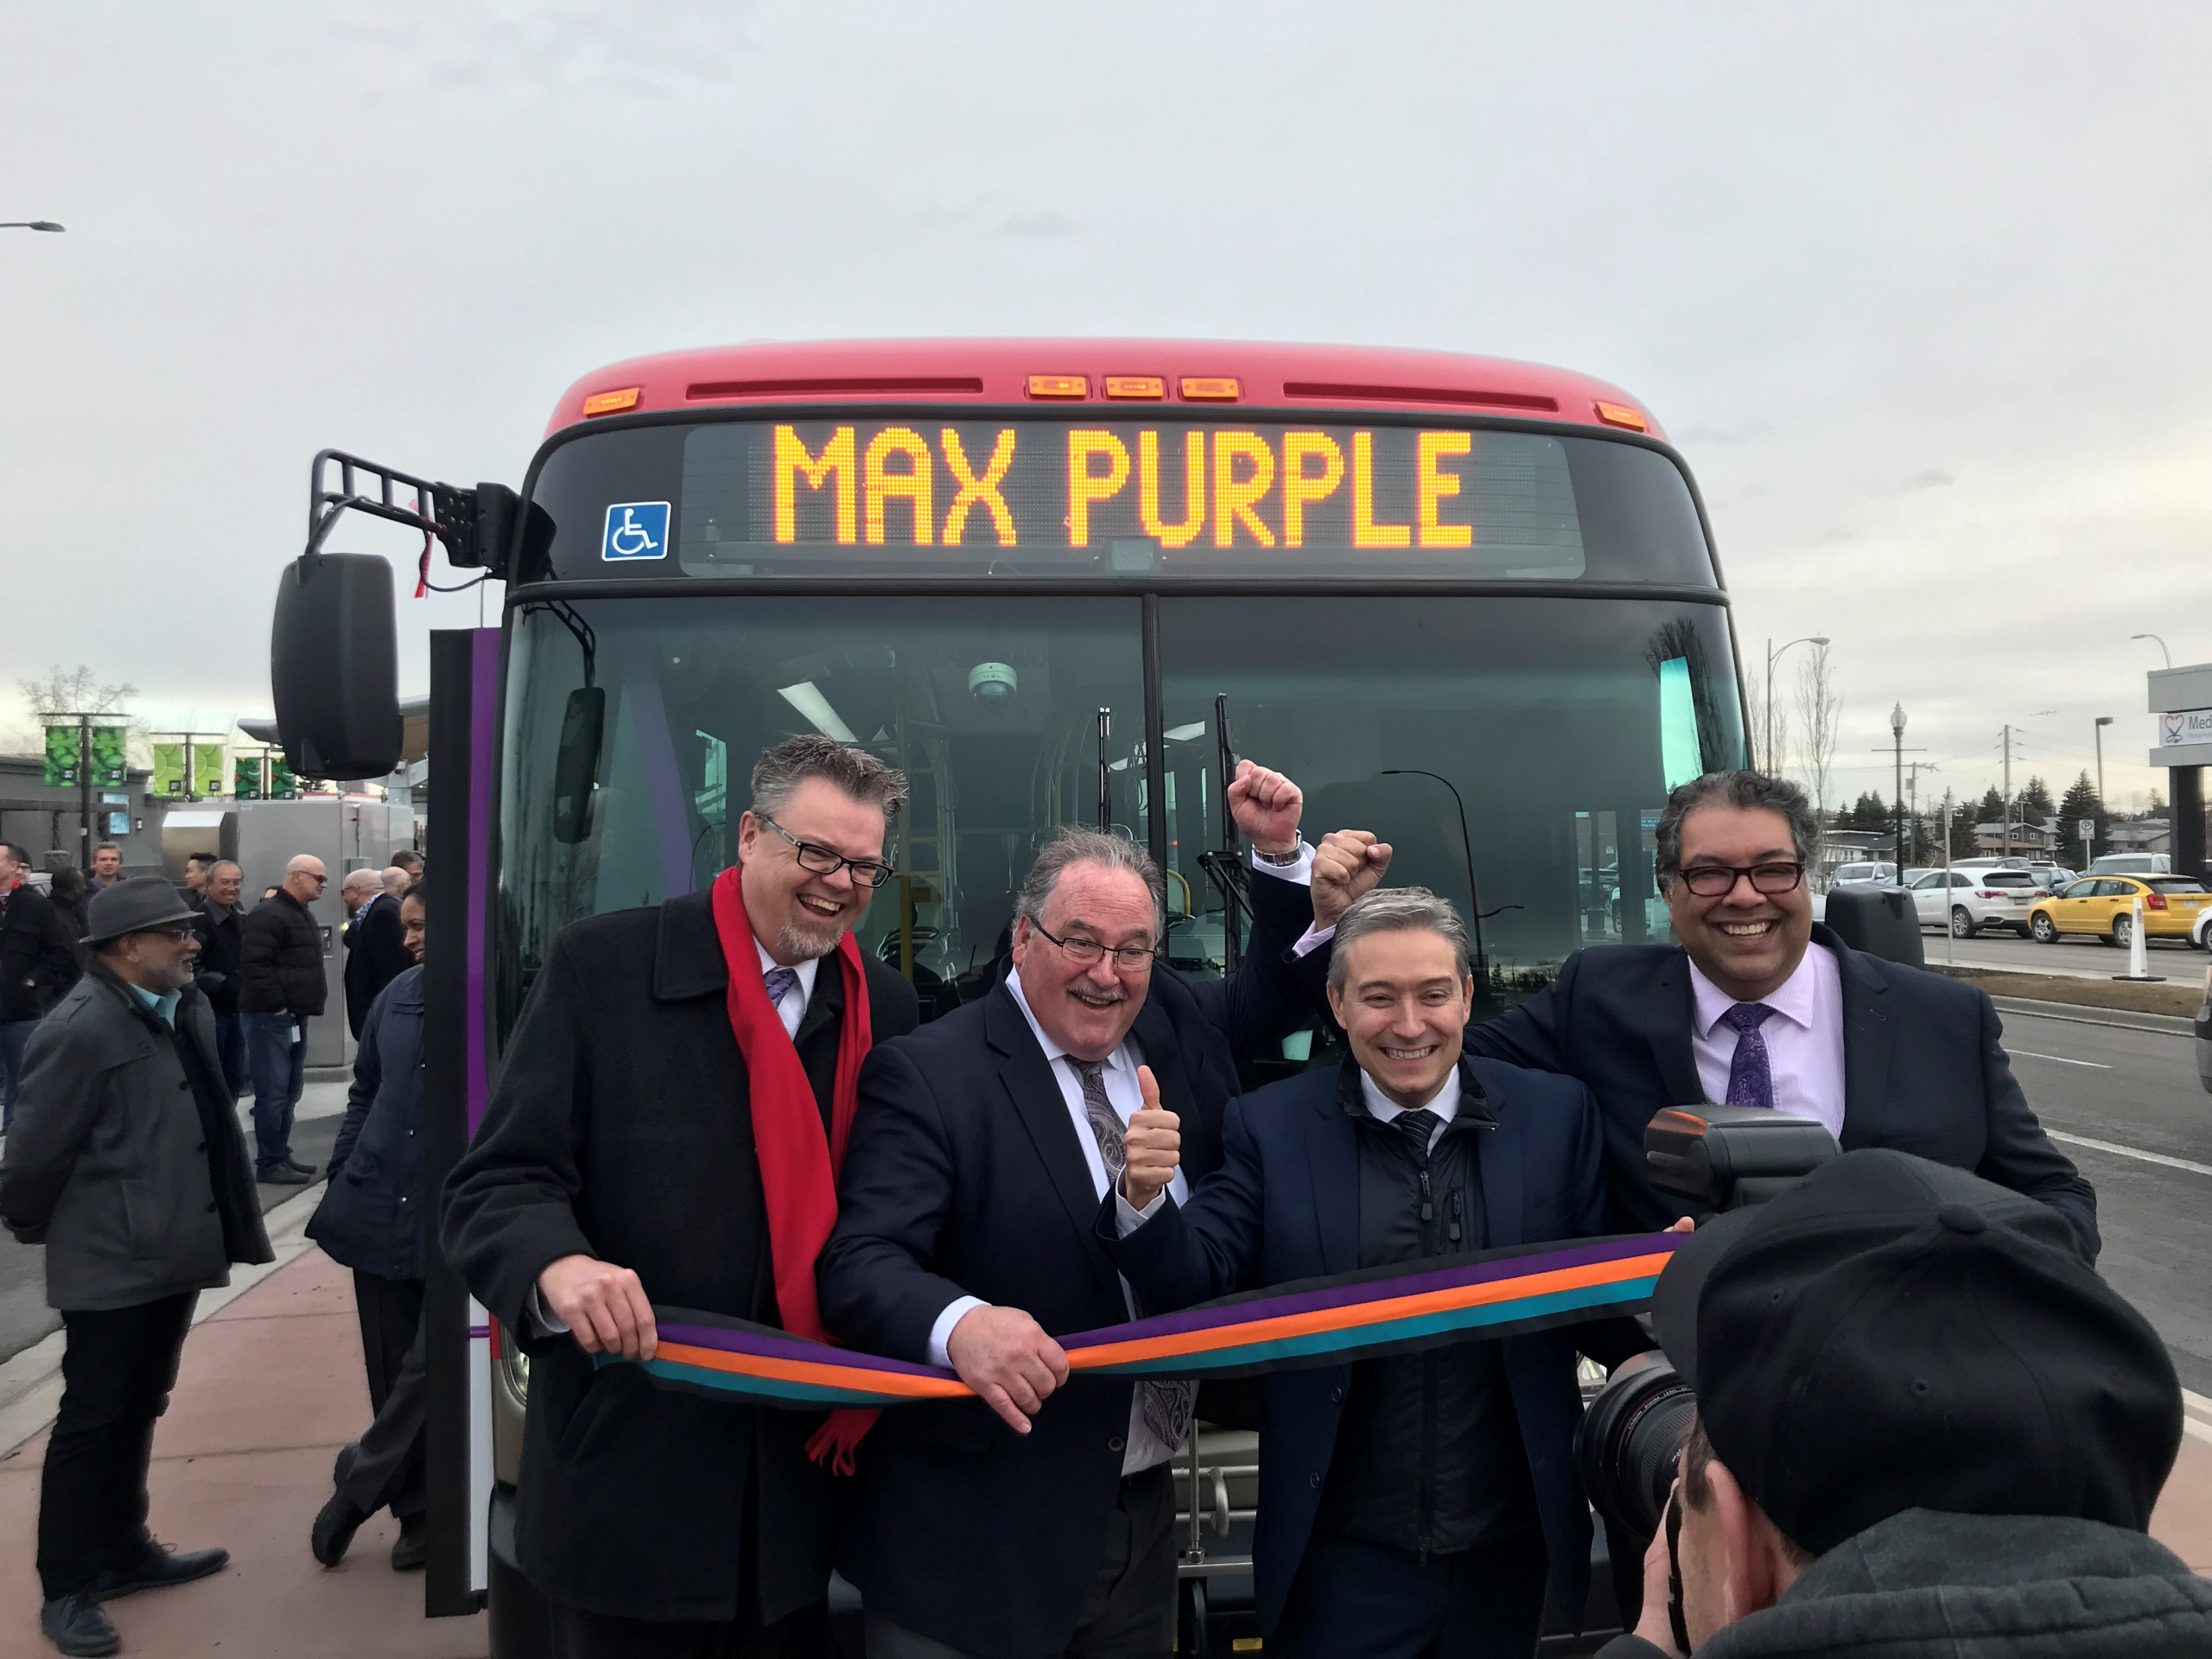 Calgary implements 3 new bus lines